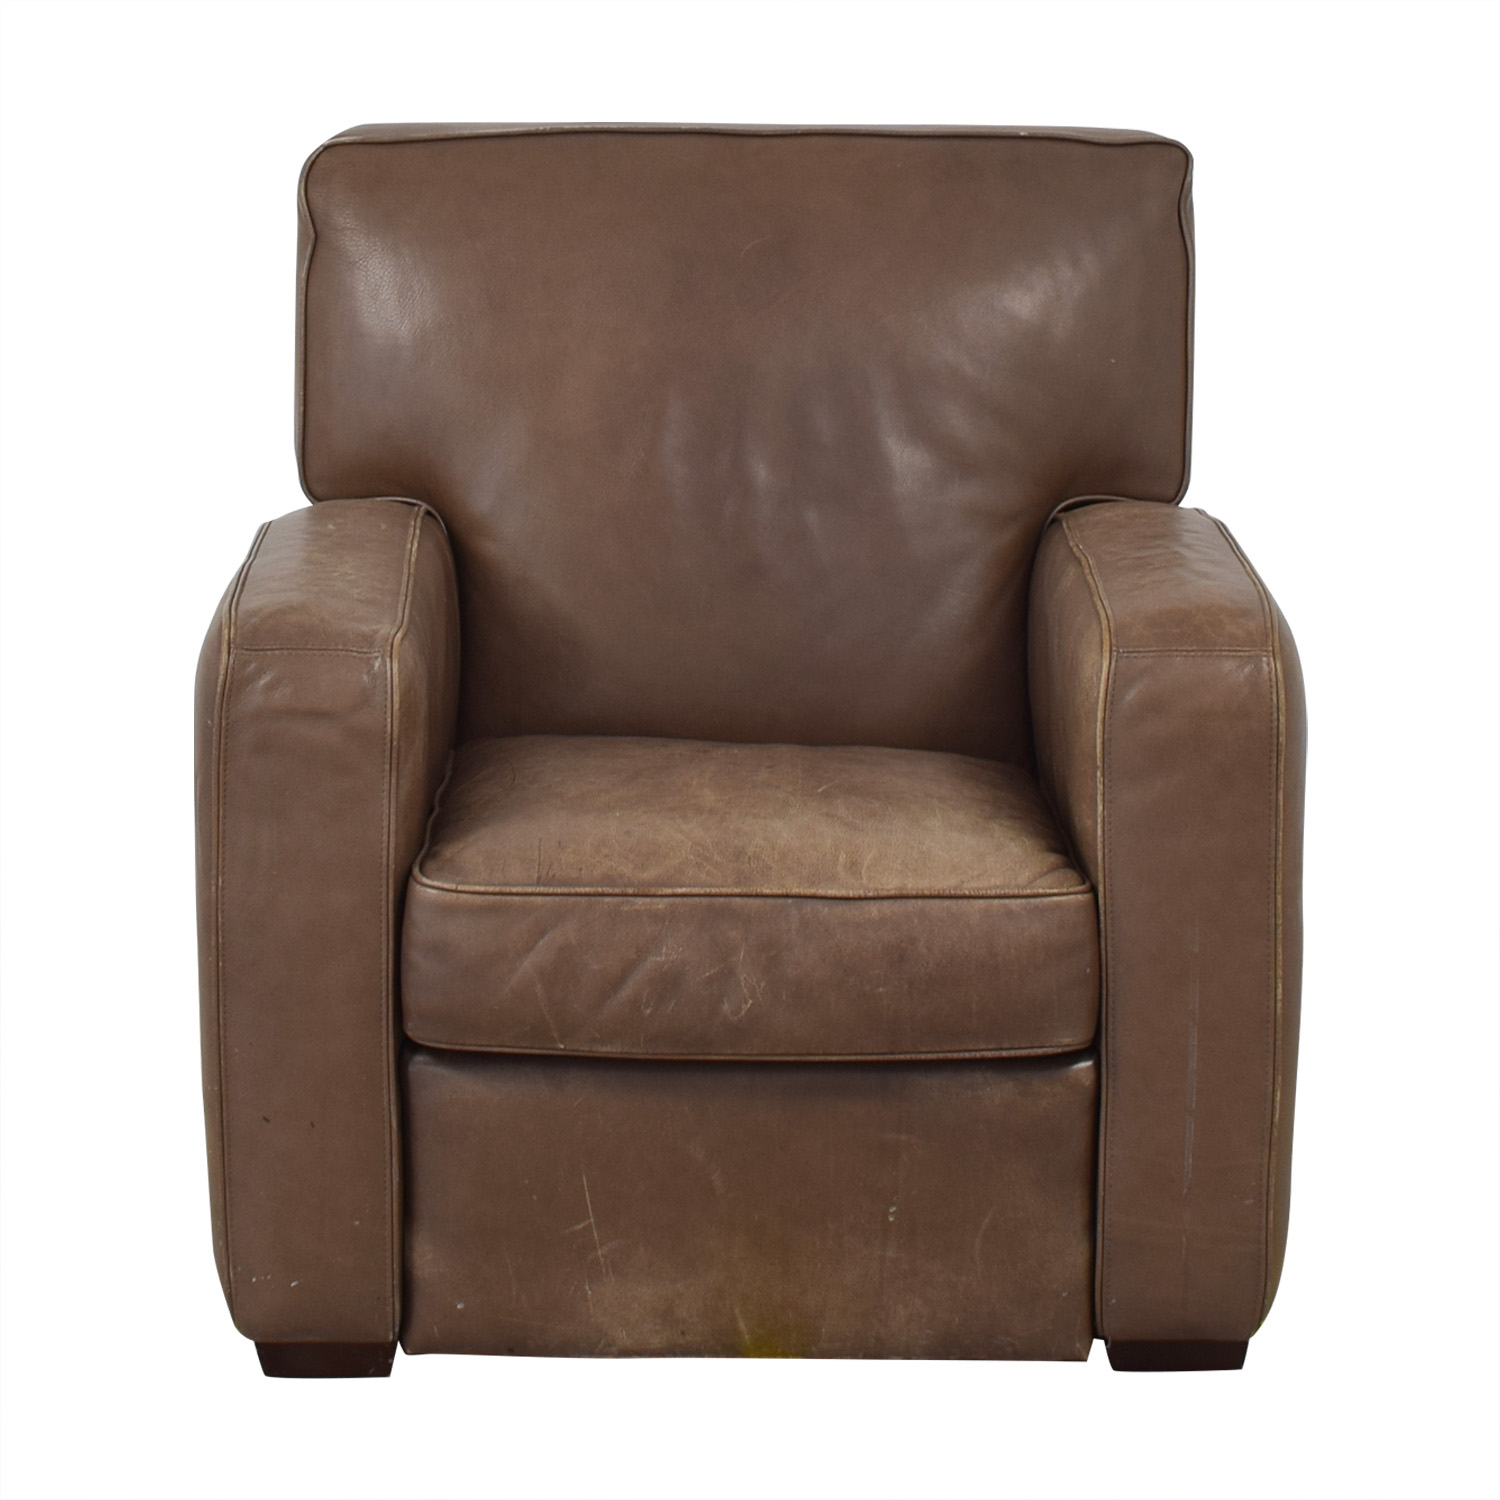 Crate & Barrel Crate & Barrel Leather Recliner Chair